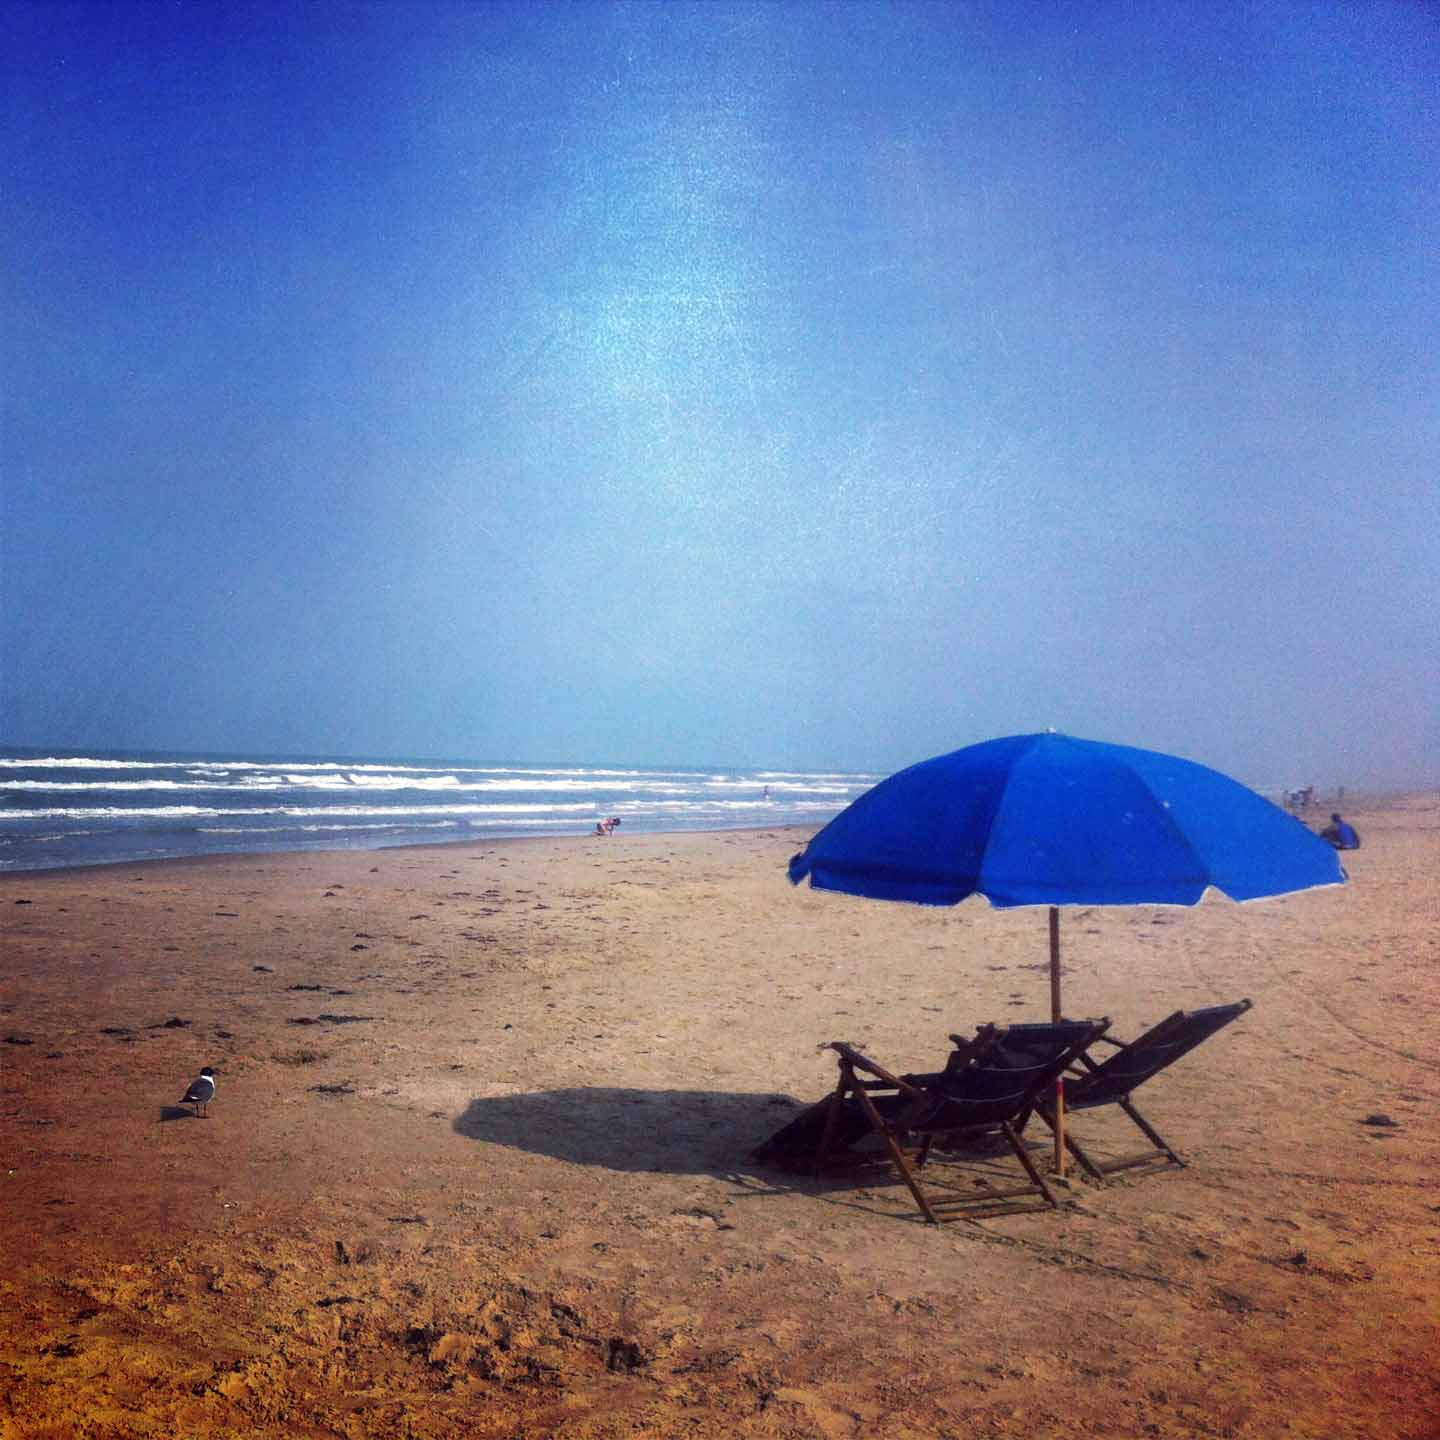 Relaxing Day on South Padre Island, Texas